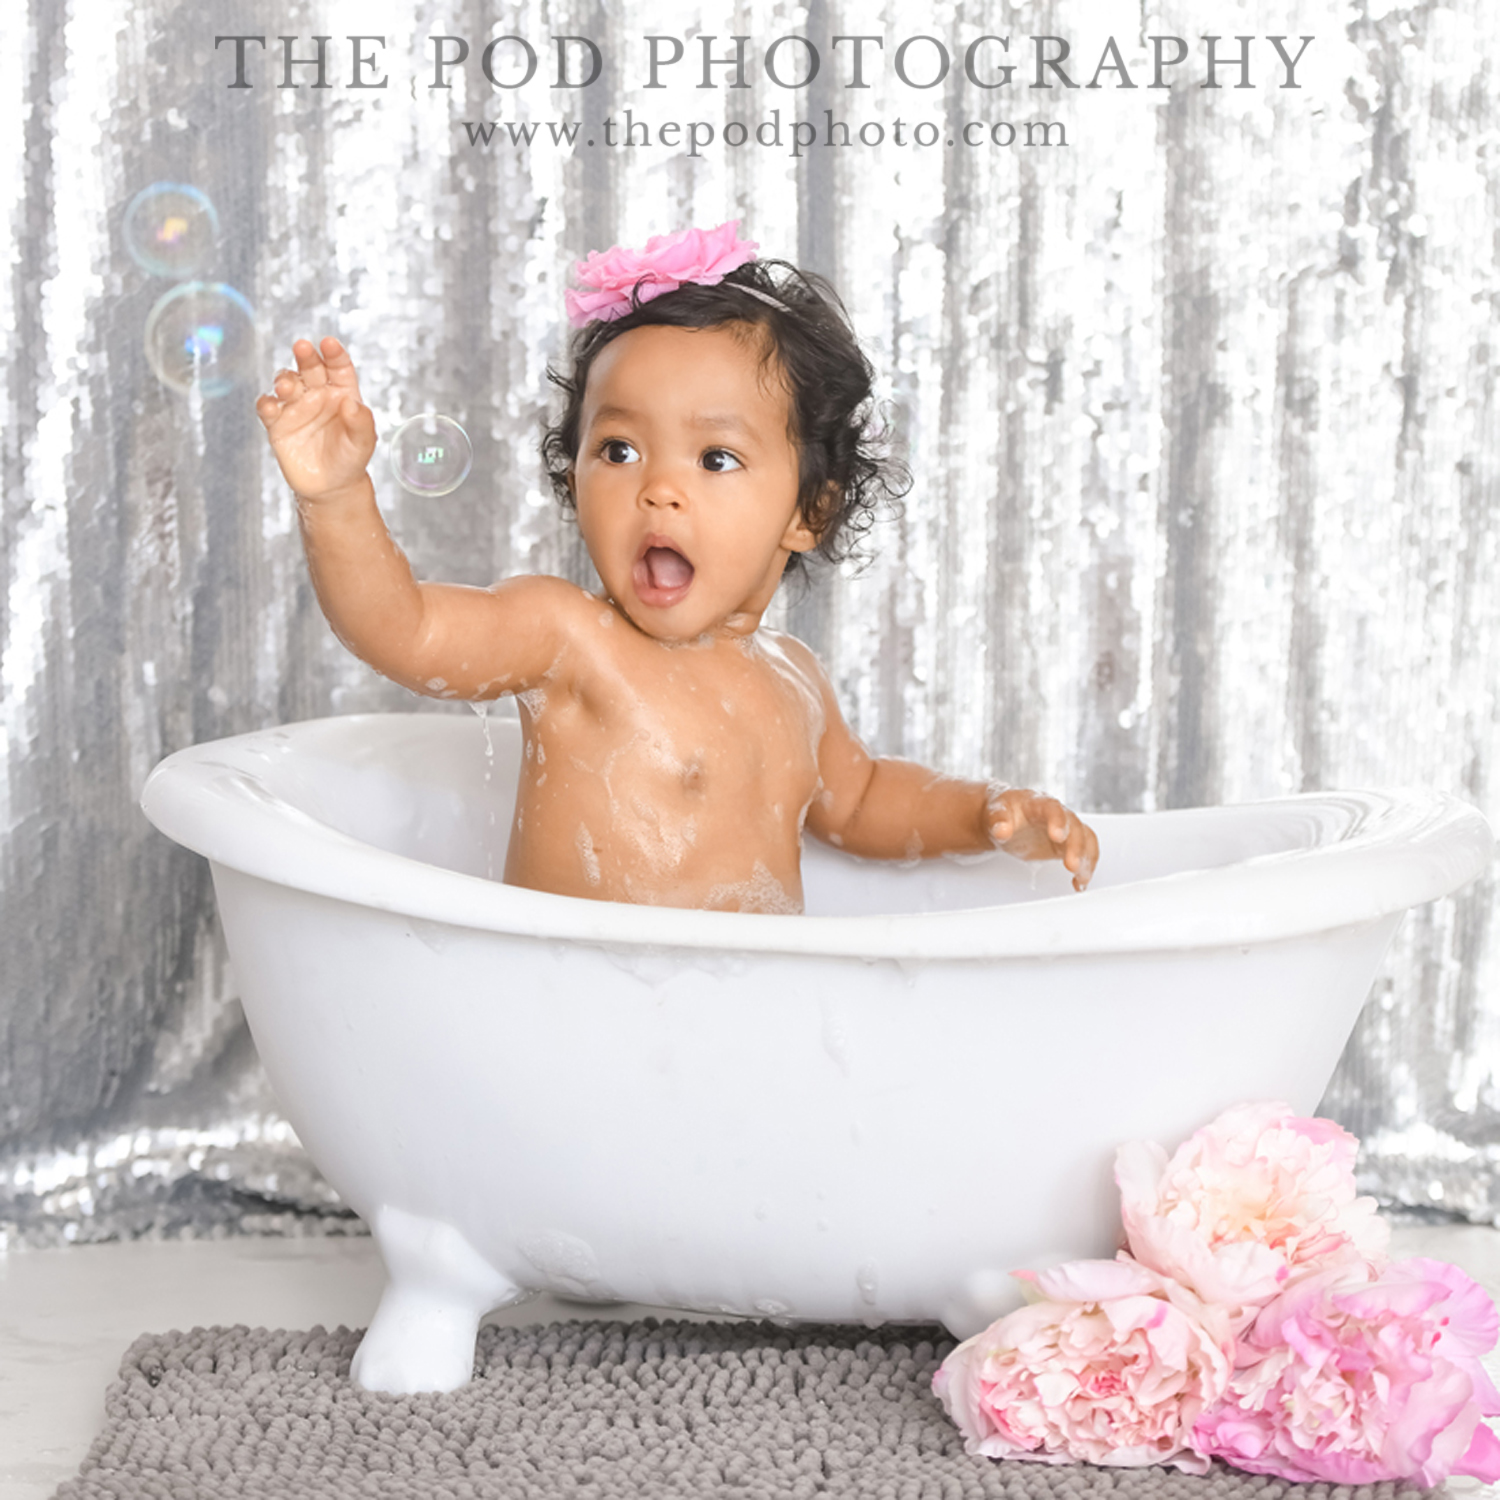 Beverly-Hills-Cake-Smash-Photography-Baby-In-A-Bathtub - Los Angeles ...